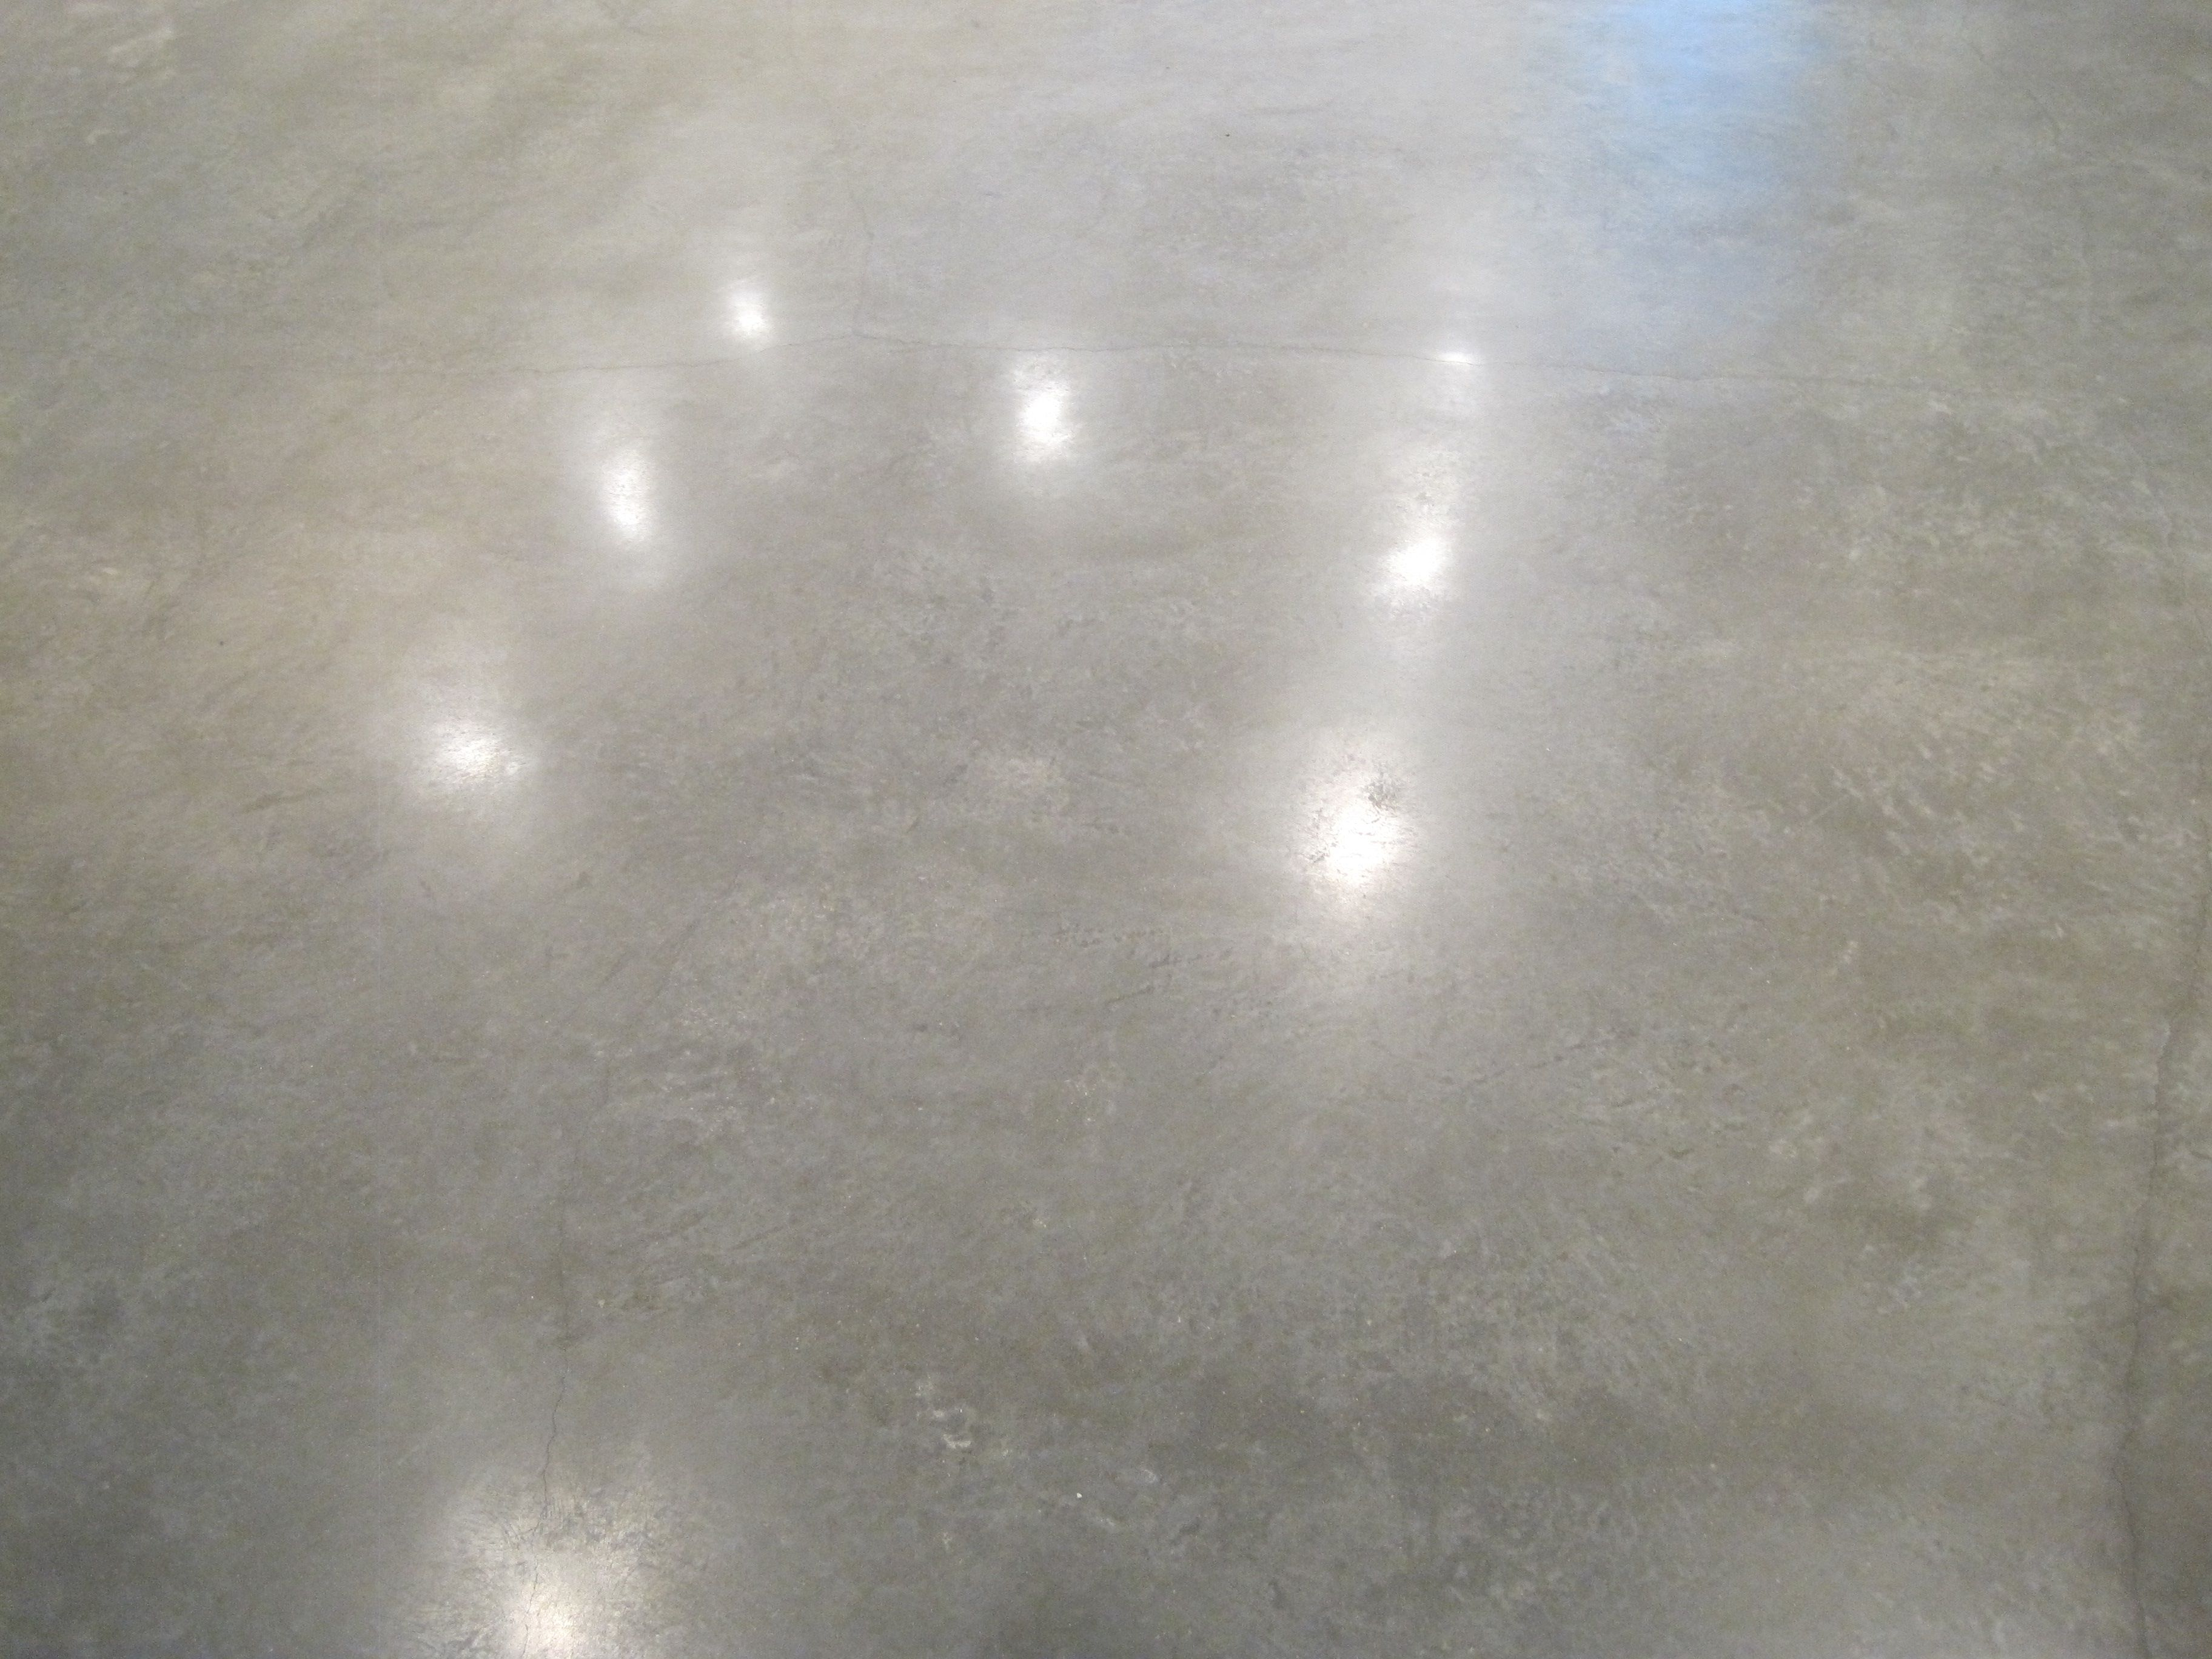 White Polished Concrete Sample  1000 images about Surface Materials for 3D on Pinterest. White Polished Concrete Sample